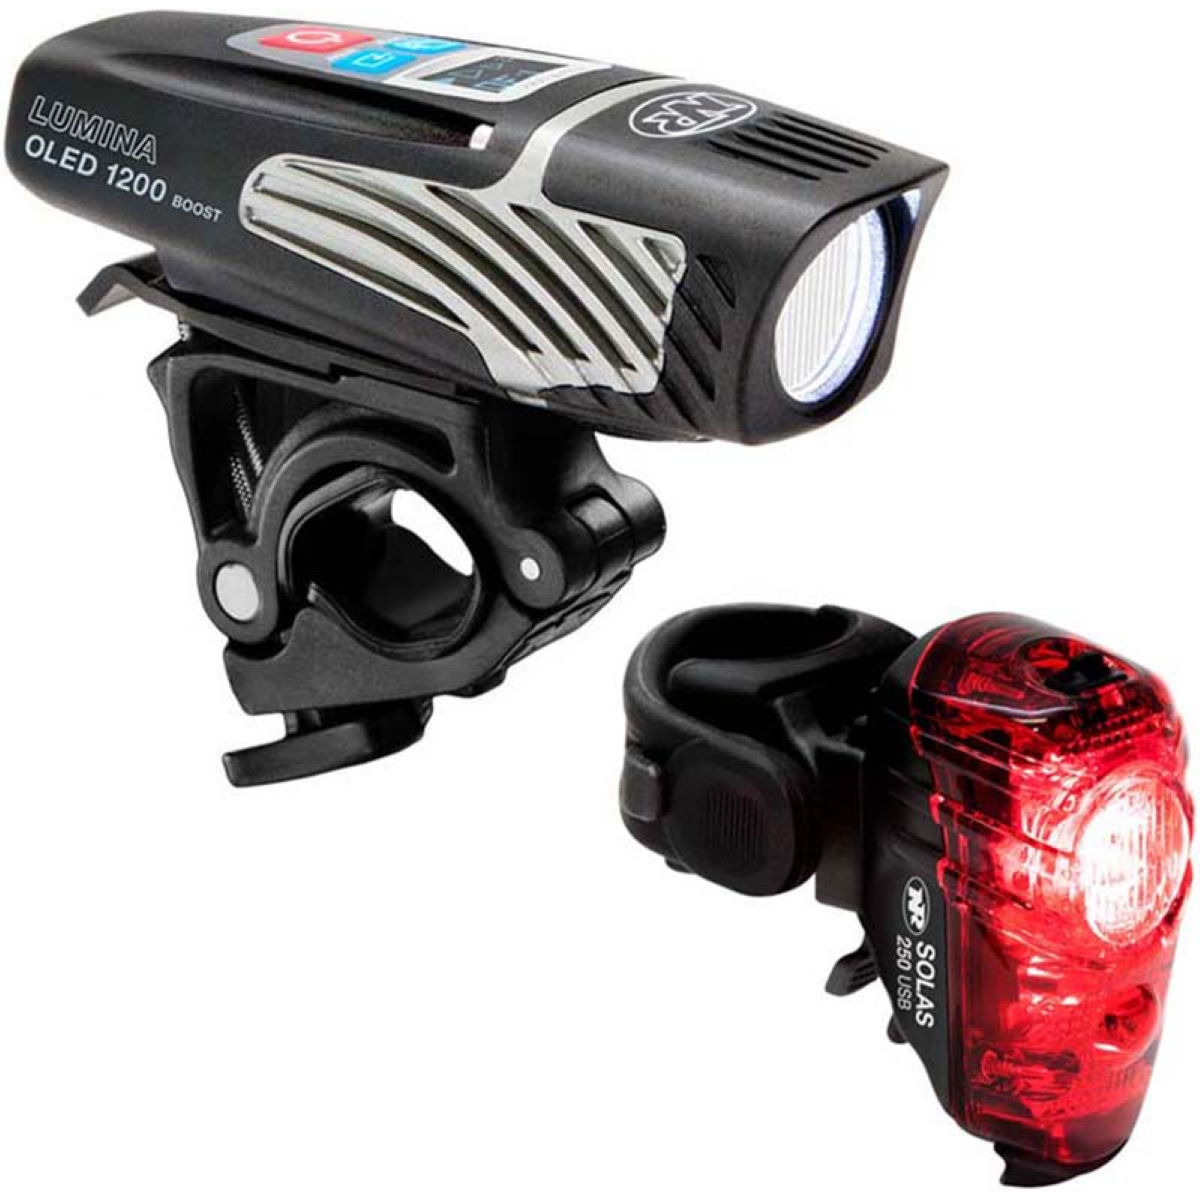 NiteRider Lumina 1200 Oled Boost/Solas 250 Combo Light Set - Juegos de luces